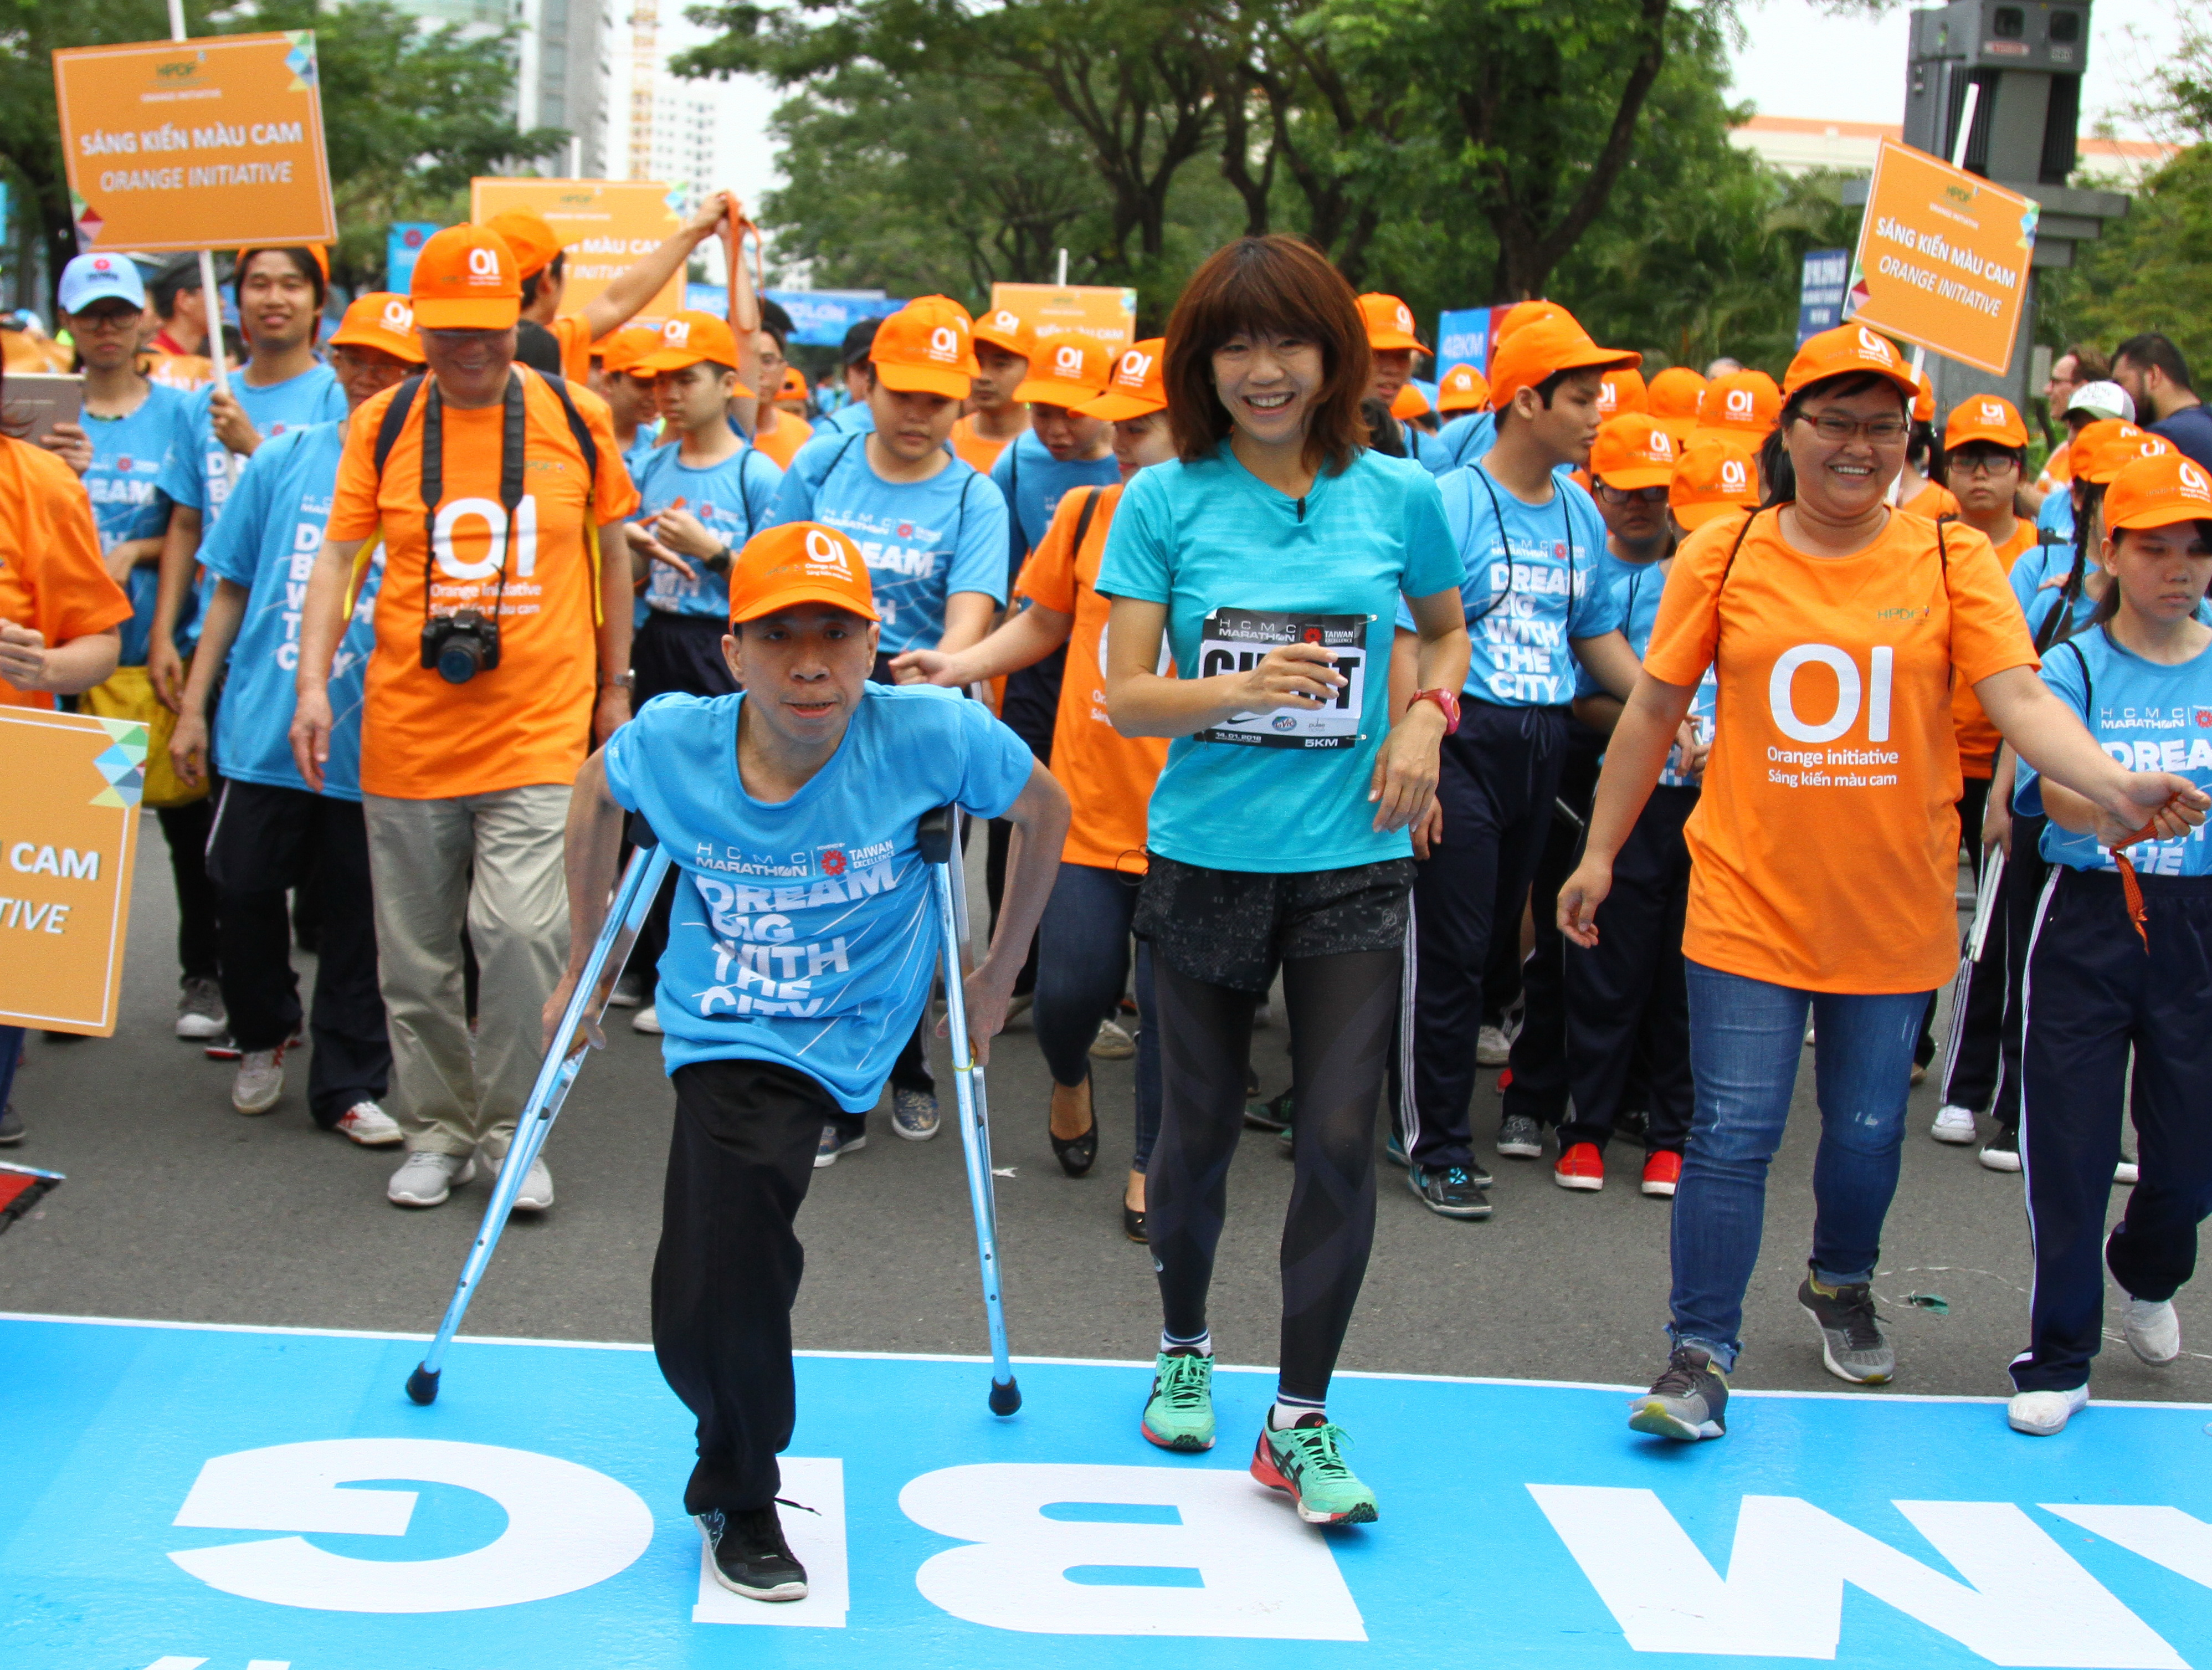 Over 8,000 join int'l marathon event in Ho Chi Minh City